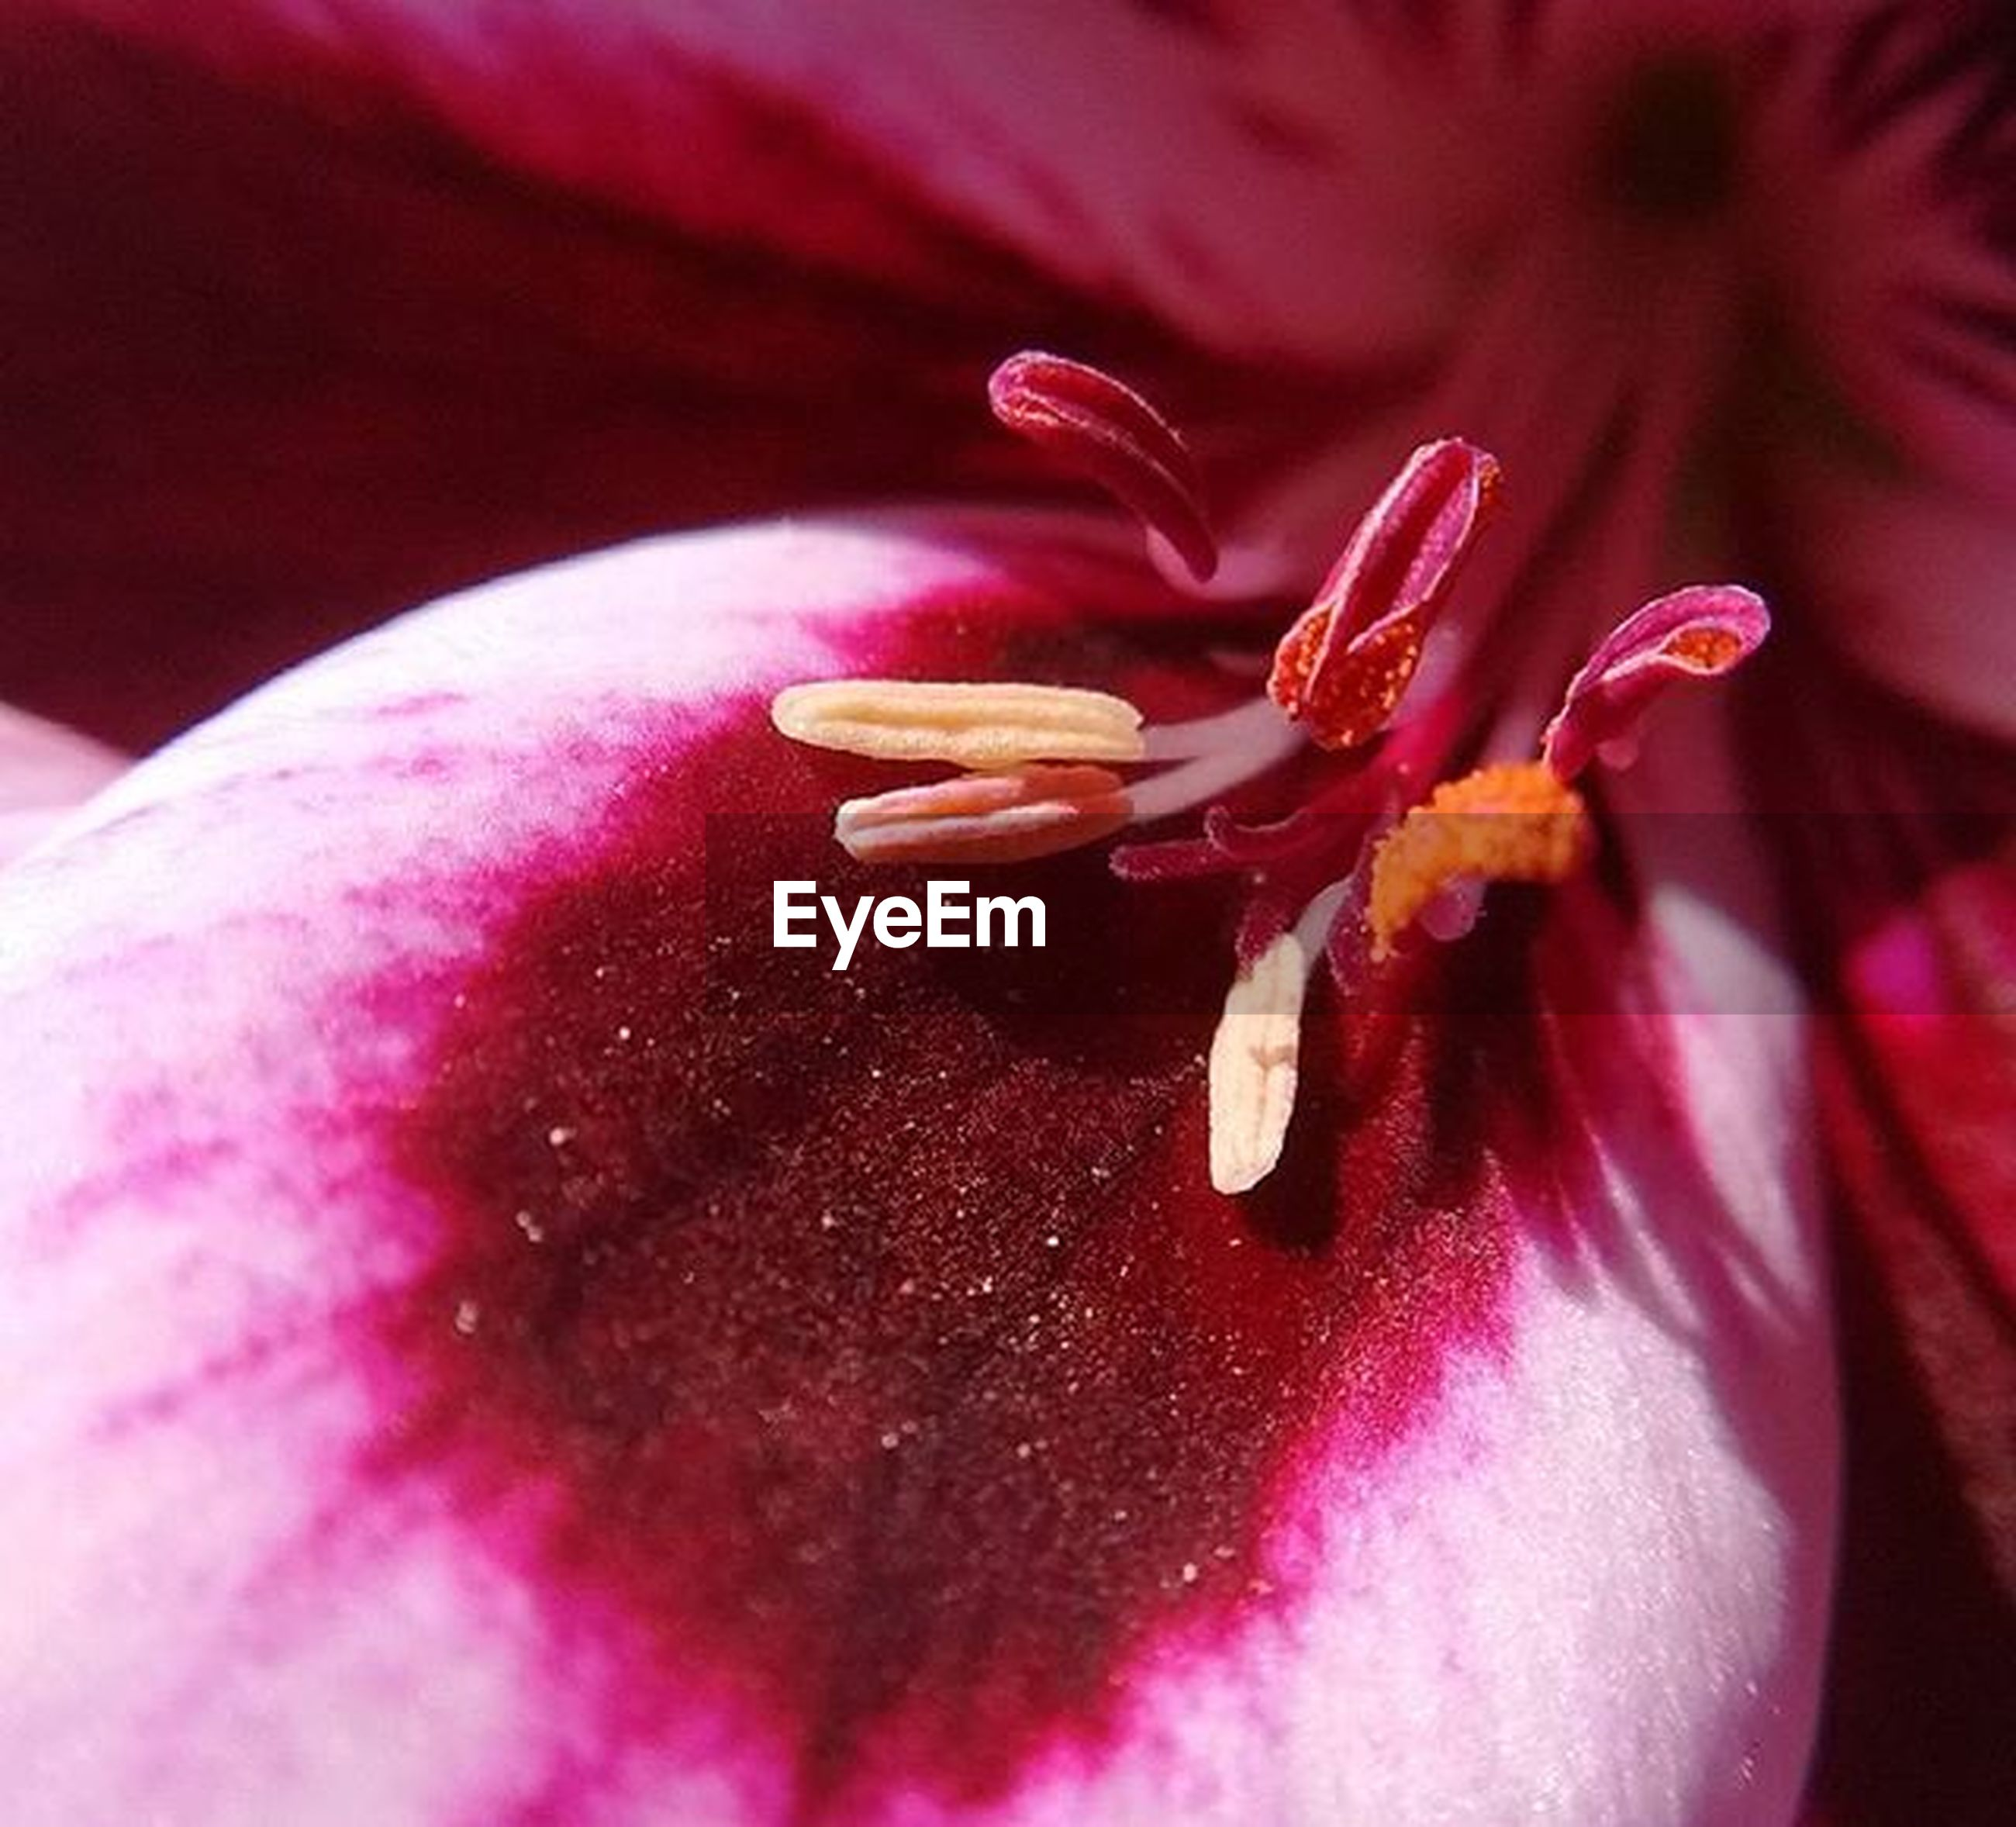 flower, freshness, petal, flower head, fragility, beauty in nature, single flower, close-up, growth, pink color, nature, stamen, extreme close-up, macro, selective focus, red, pollen, tulip, full frame, backgrounds